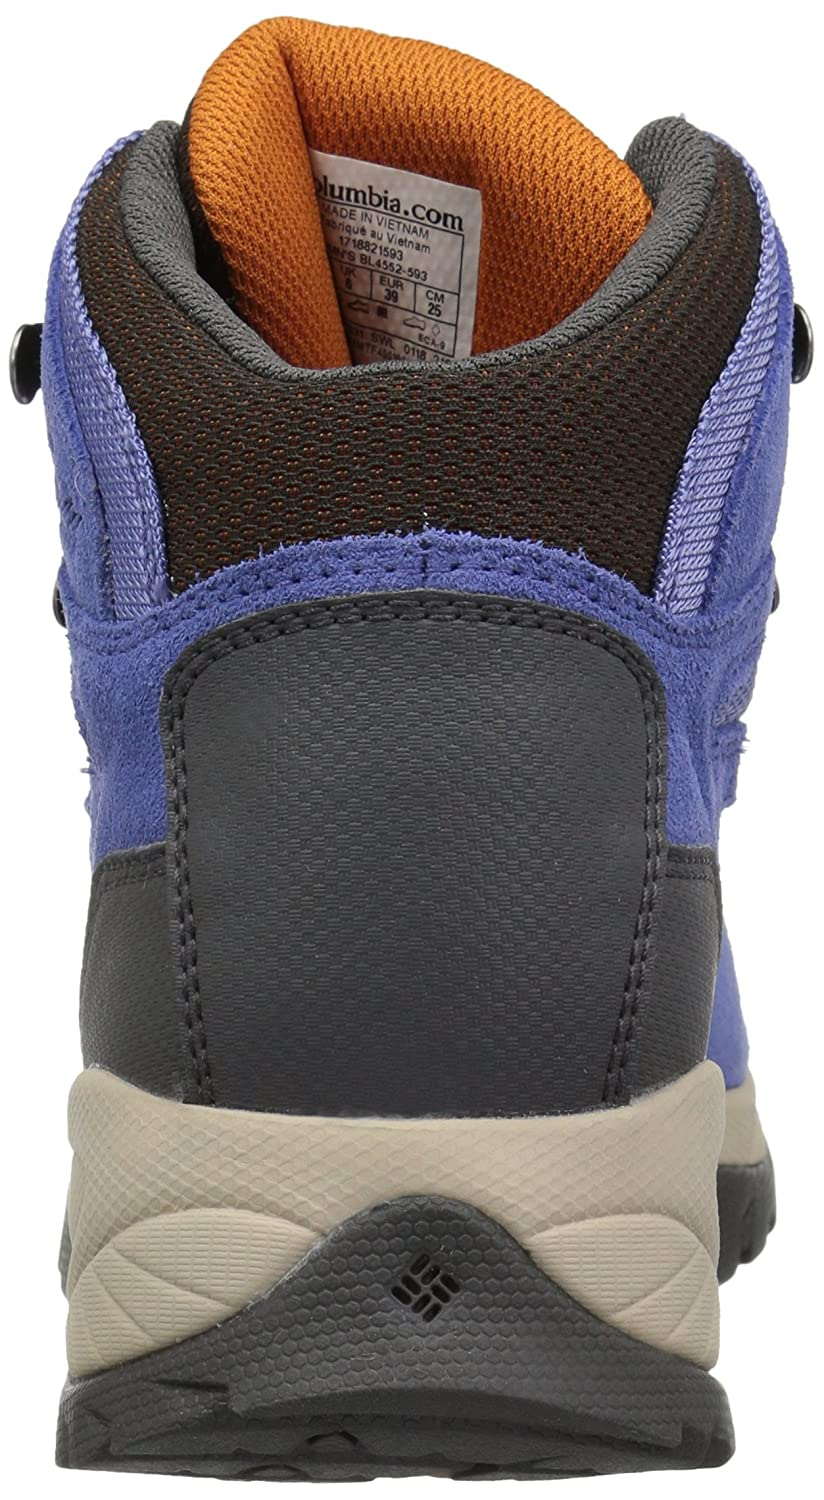 1f21534ab2e Columbia Women's Newton Ridge Plus Waterproof Amped Boot, Ankle Support,  High-Traction Grip